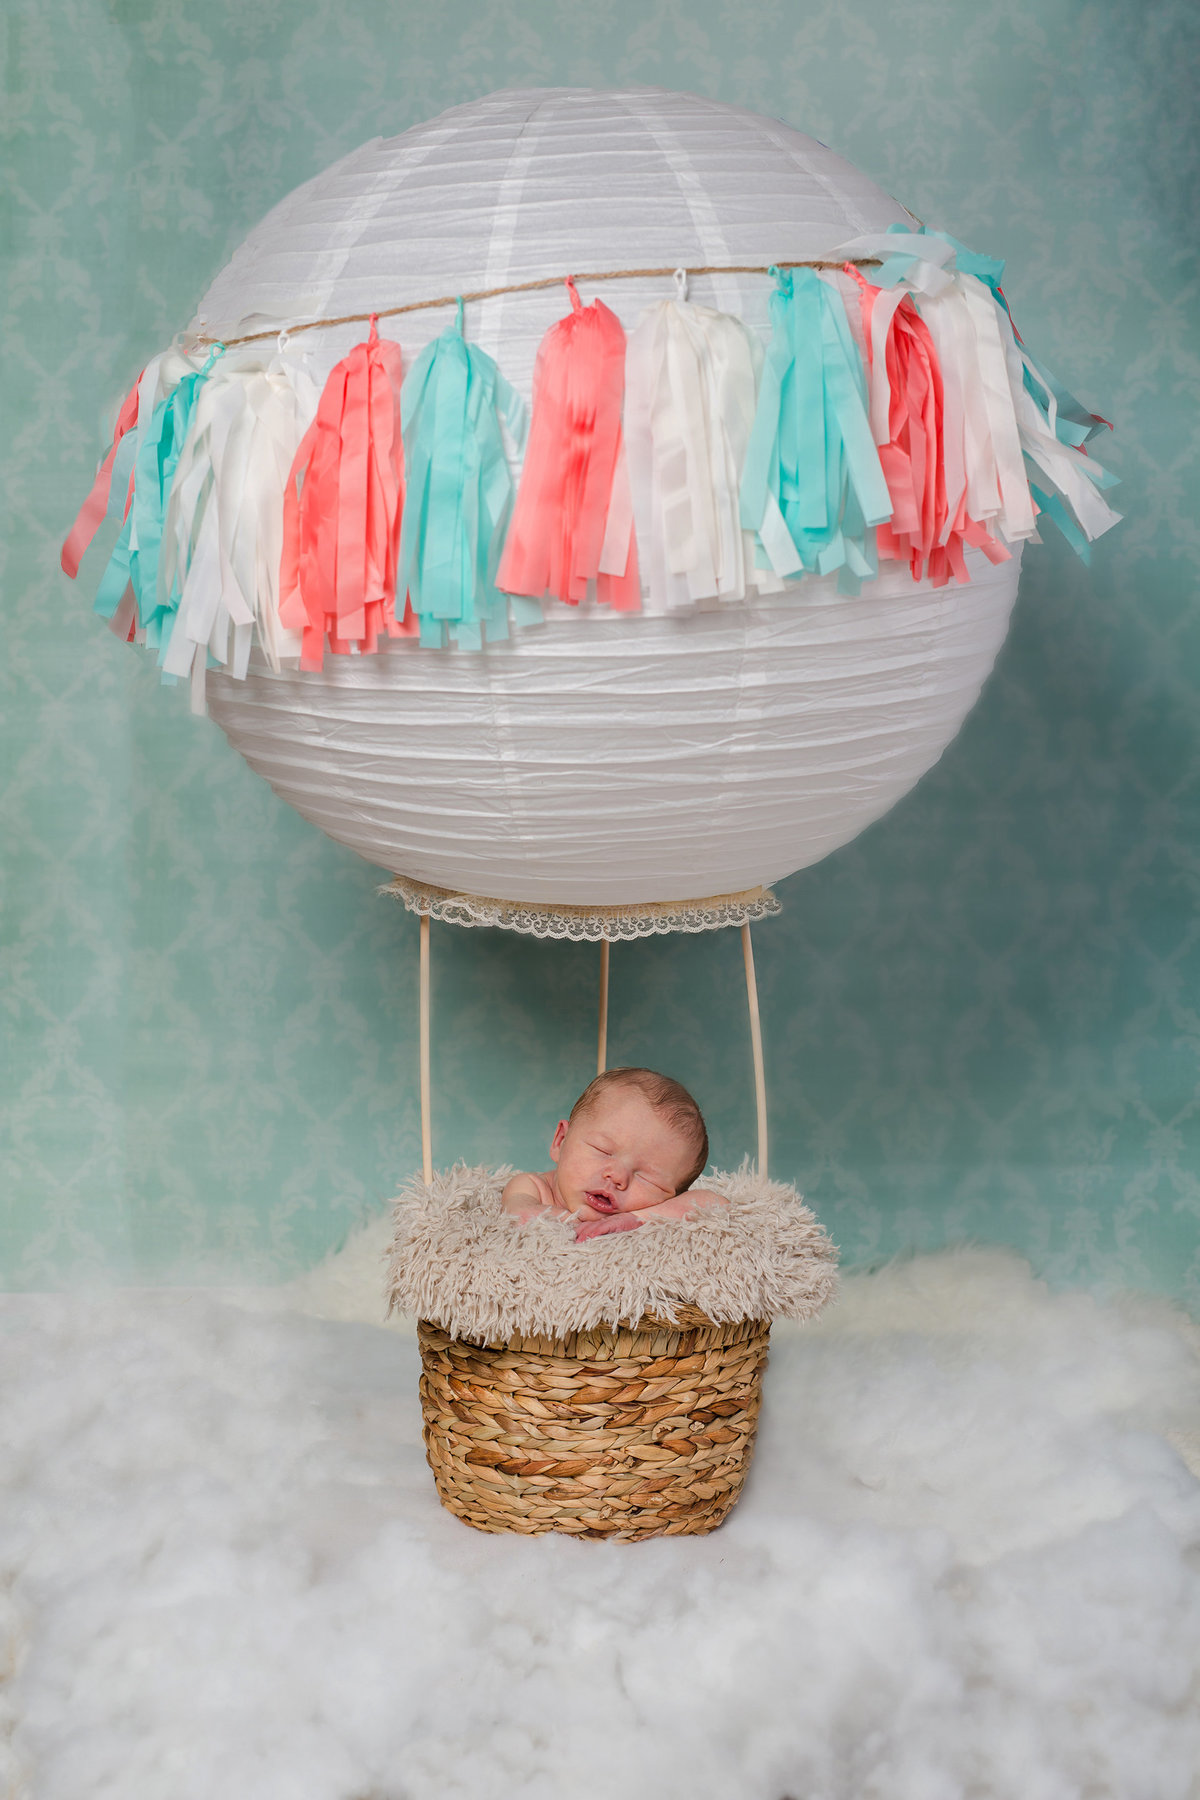 creative ideas for newborn photos